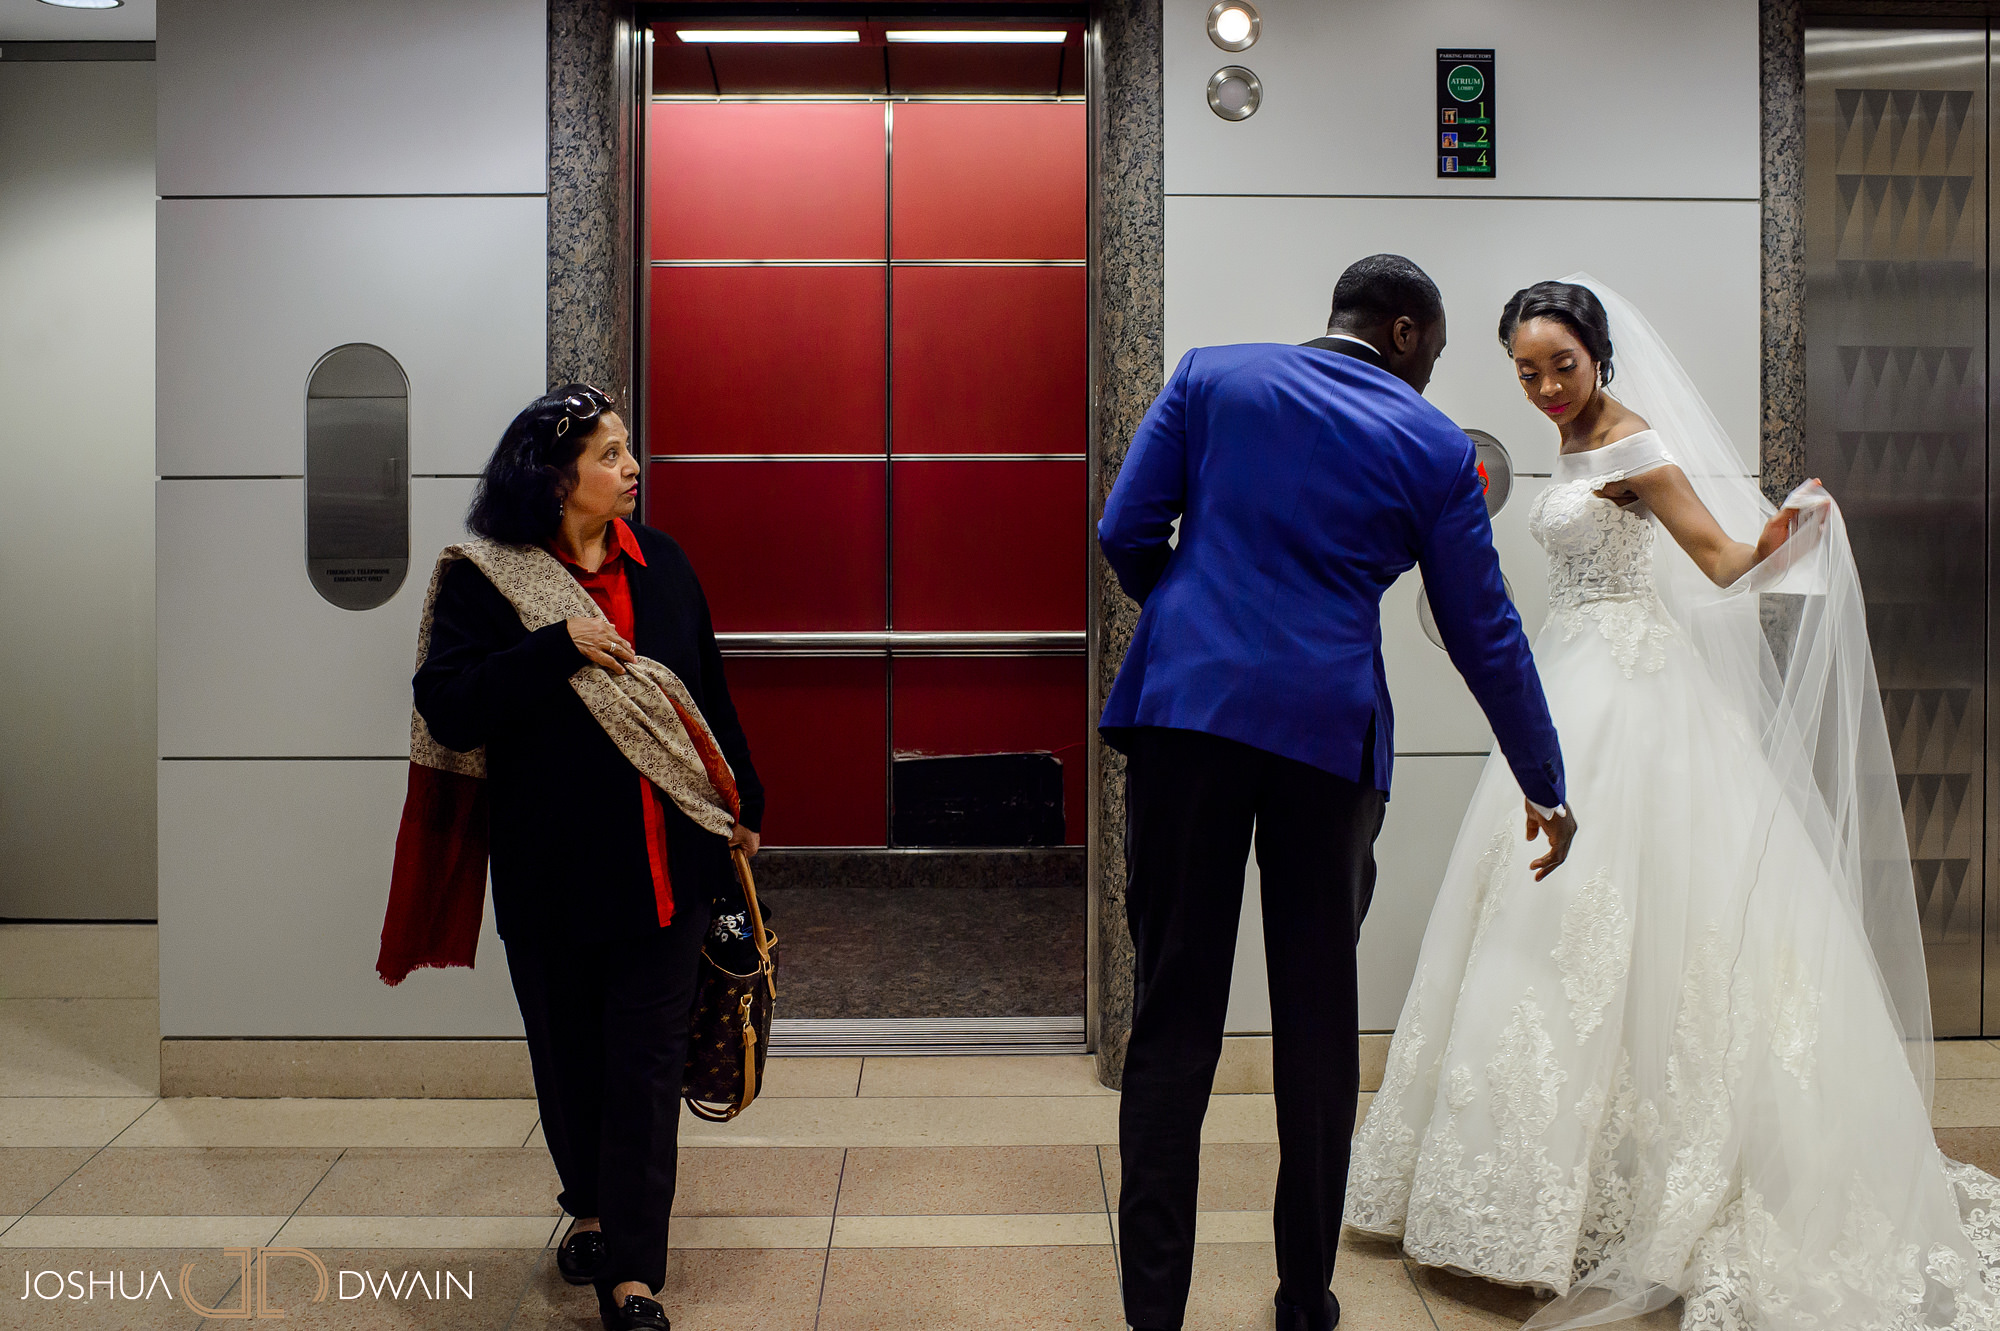 emerald-tolu--026-ronald-reagan-building-trade-center-best-washington-dc--wedding-photographer-joshua-dwain